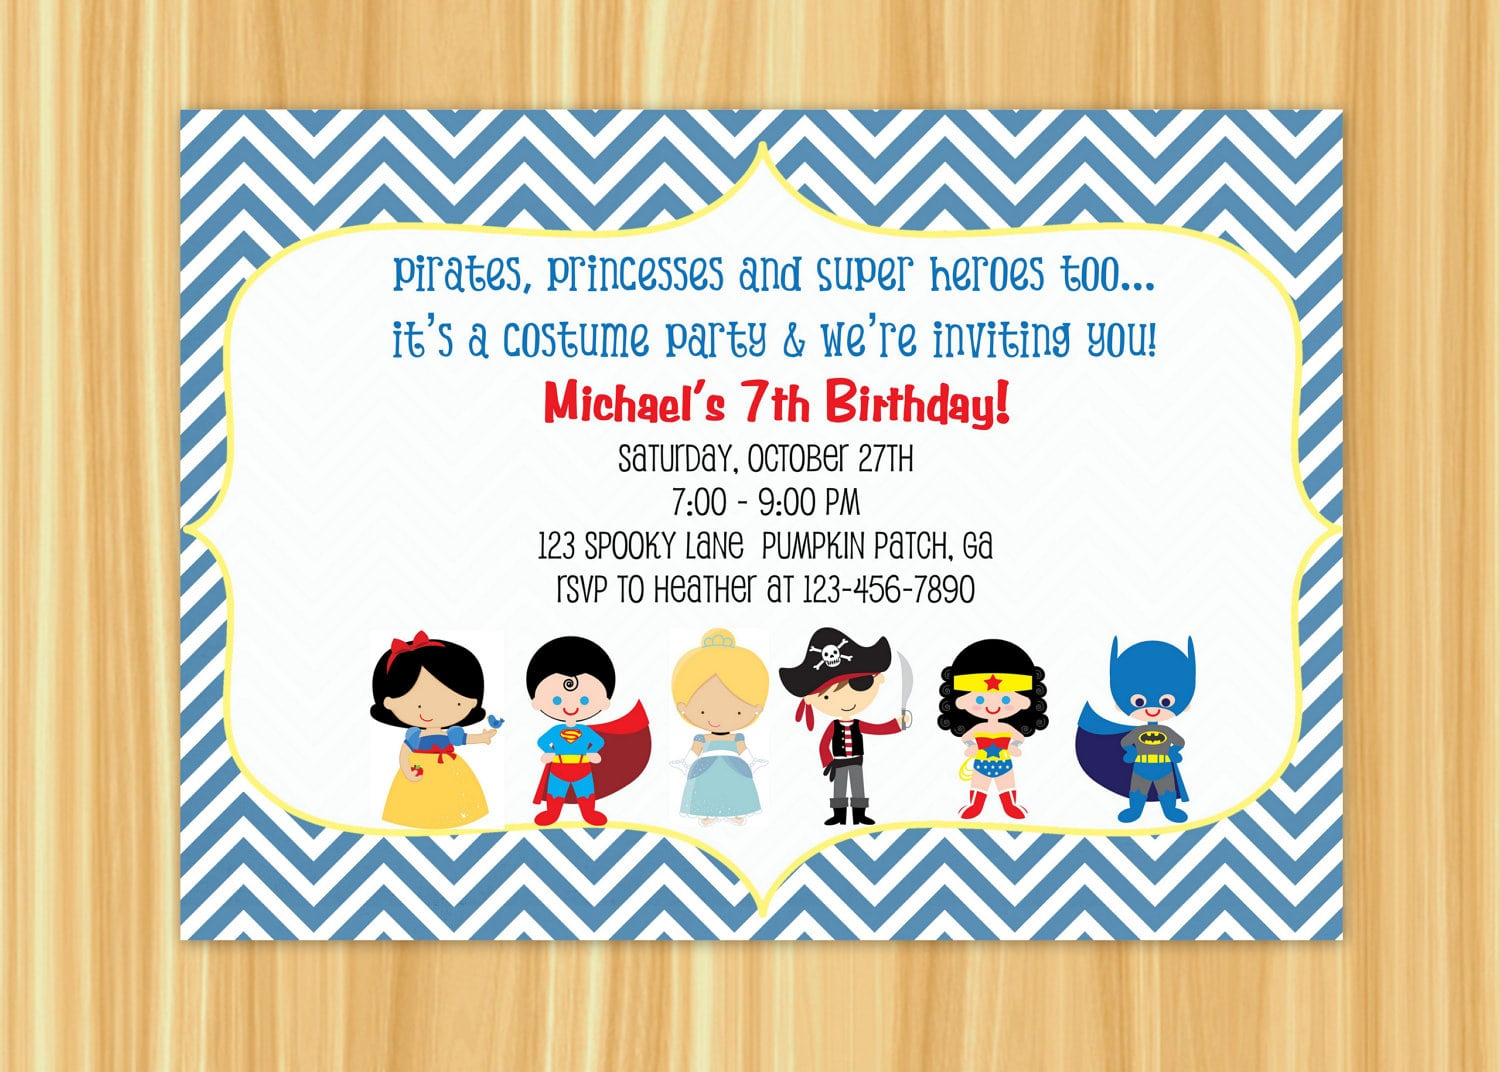 Customized Party Invitations